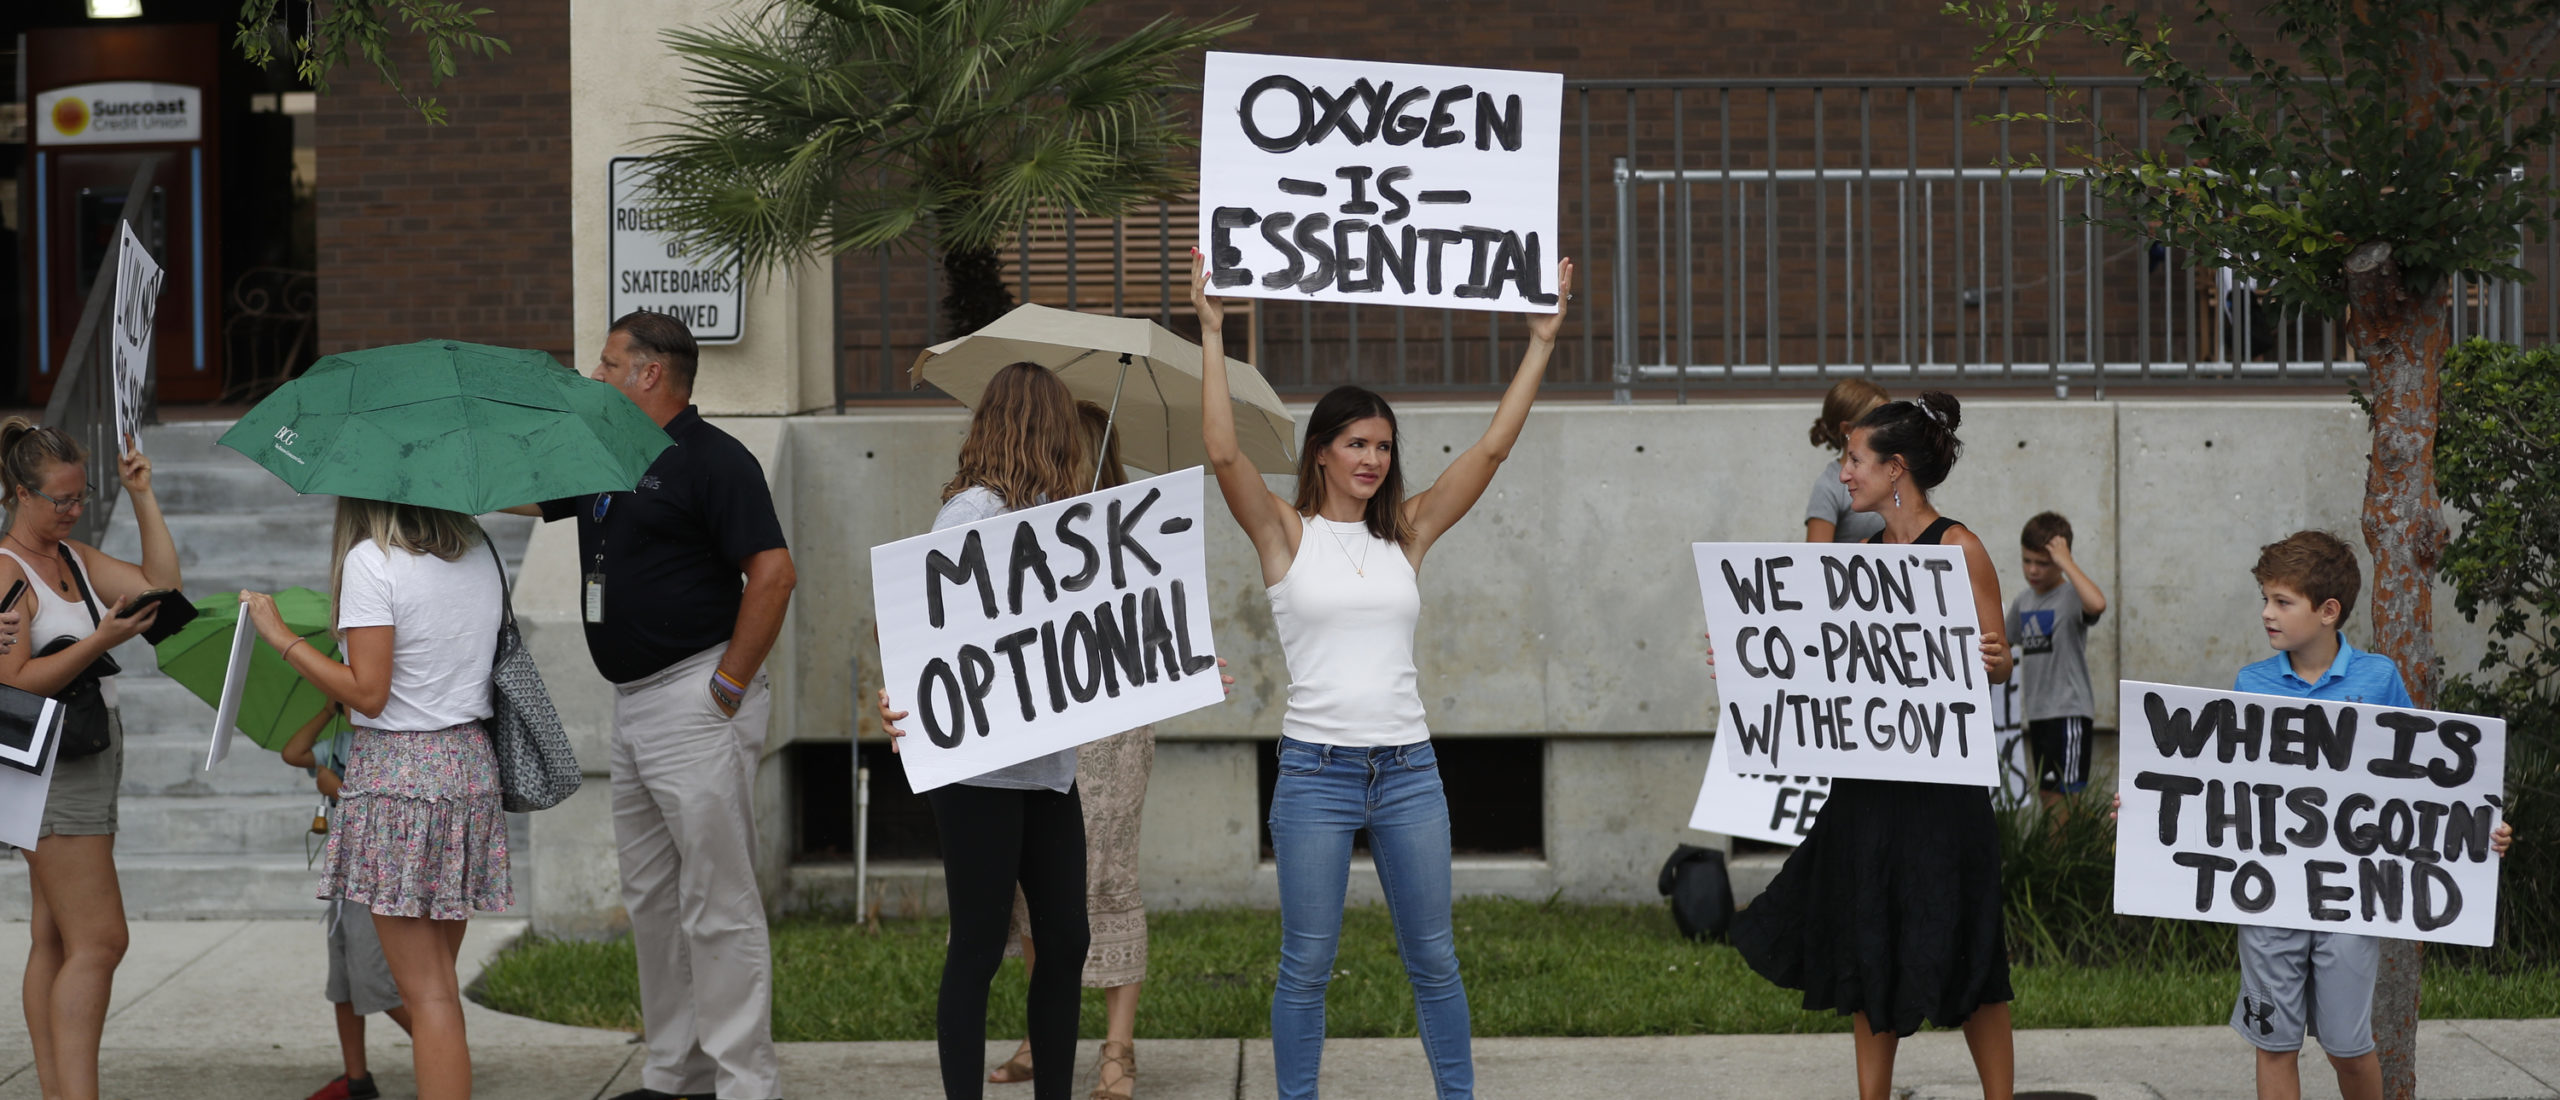 Families protest any potential mask mandates before the Hillsborough County Schools Board meeting held at the district office on July 27, 2021 in Tampa, Florida. The Centers for Disease Control and Prevention recommended those who are vaccinated should wear masks indoors including students returning to school.